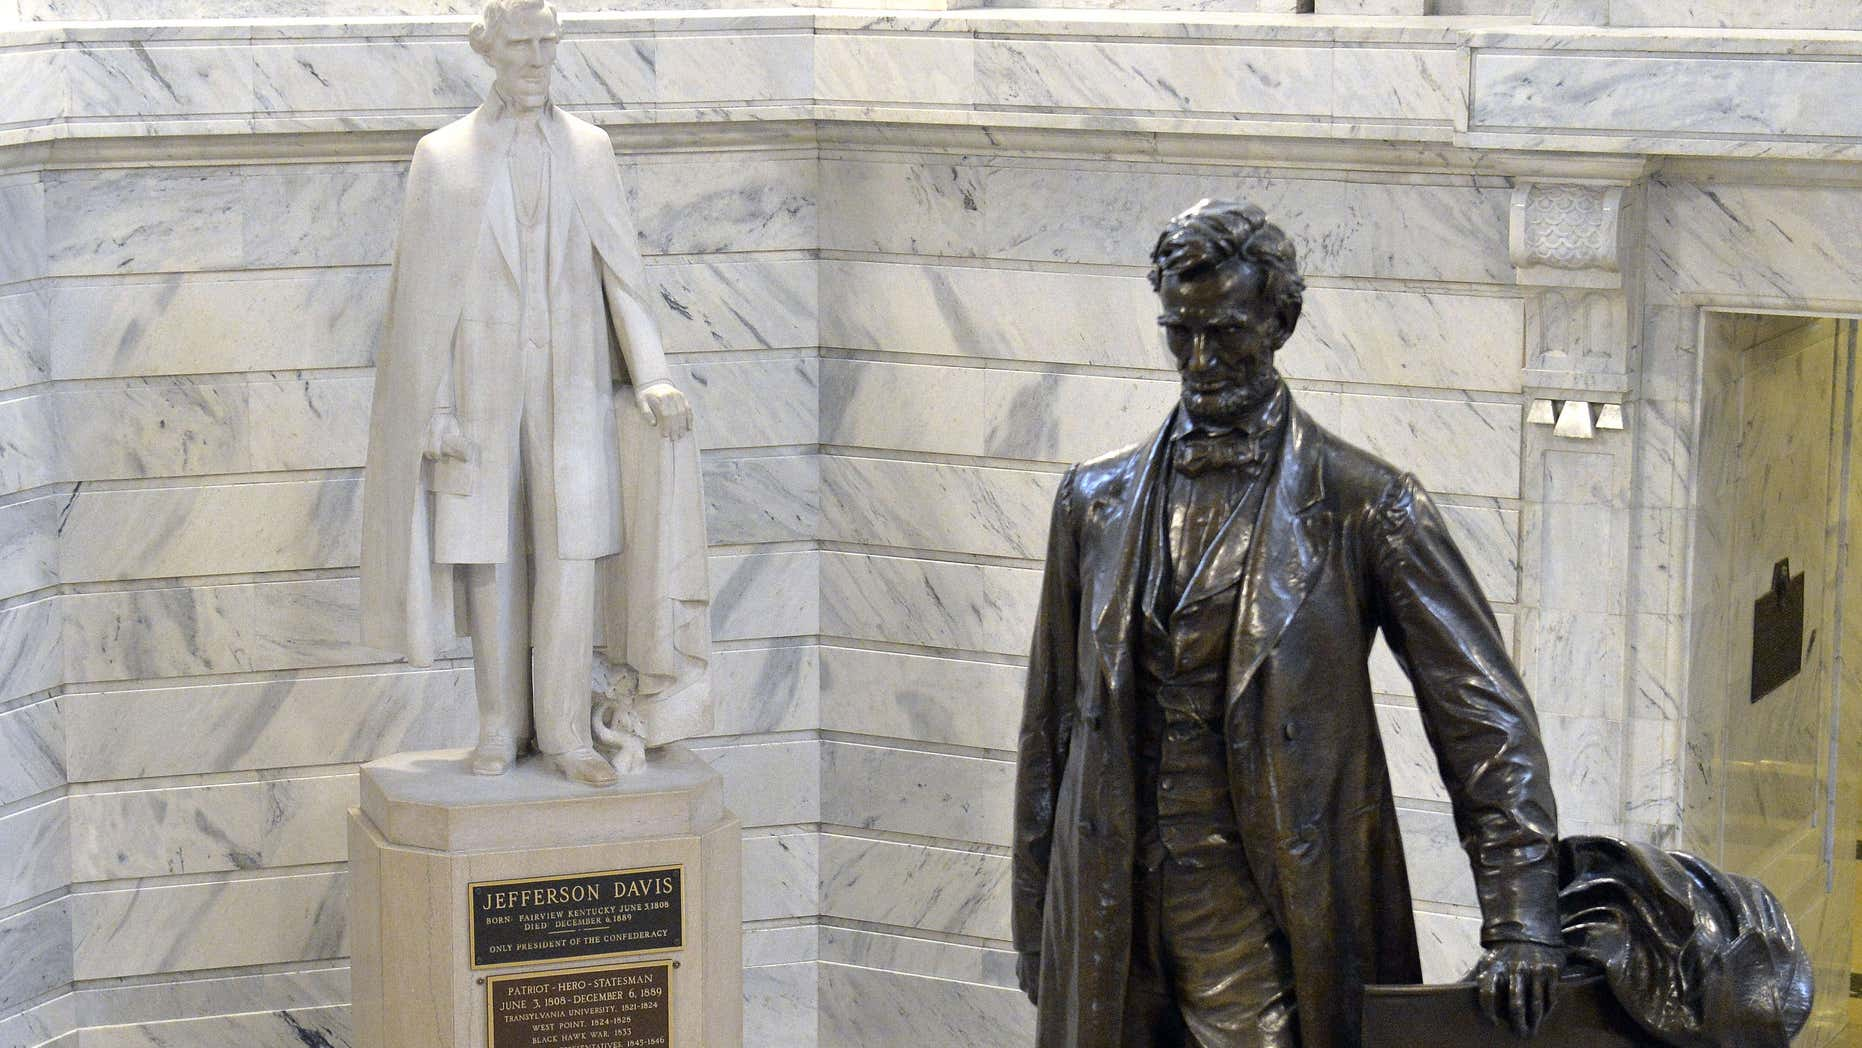 Aug. 5, 2015: The statue of Jefferson Davis, left, overlooks the statue of Abraham Lincoln in the Rotunda of the Kentucky State Capitol in Frankfort Ky.